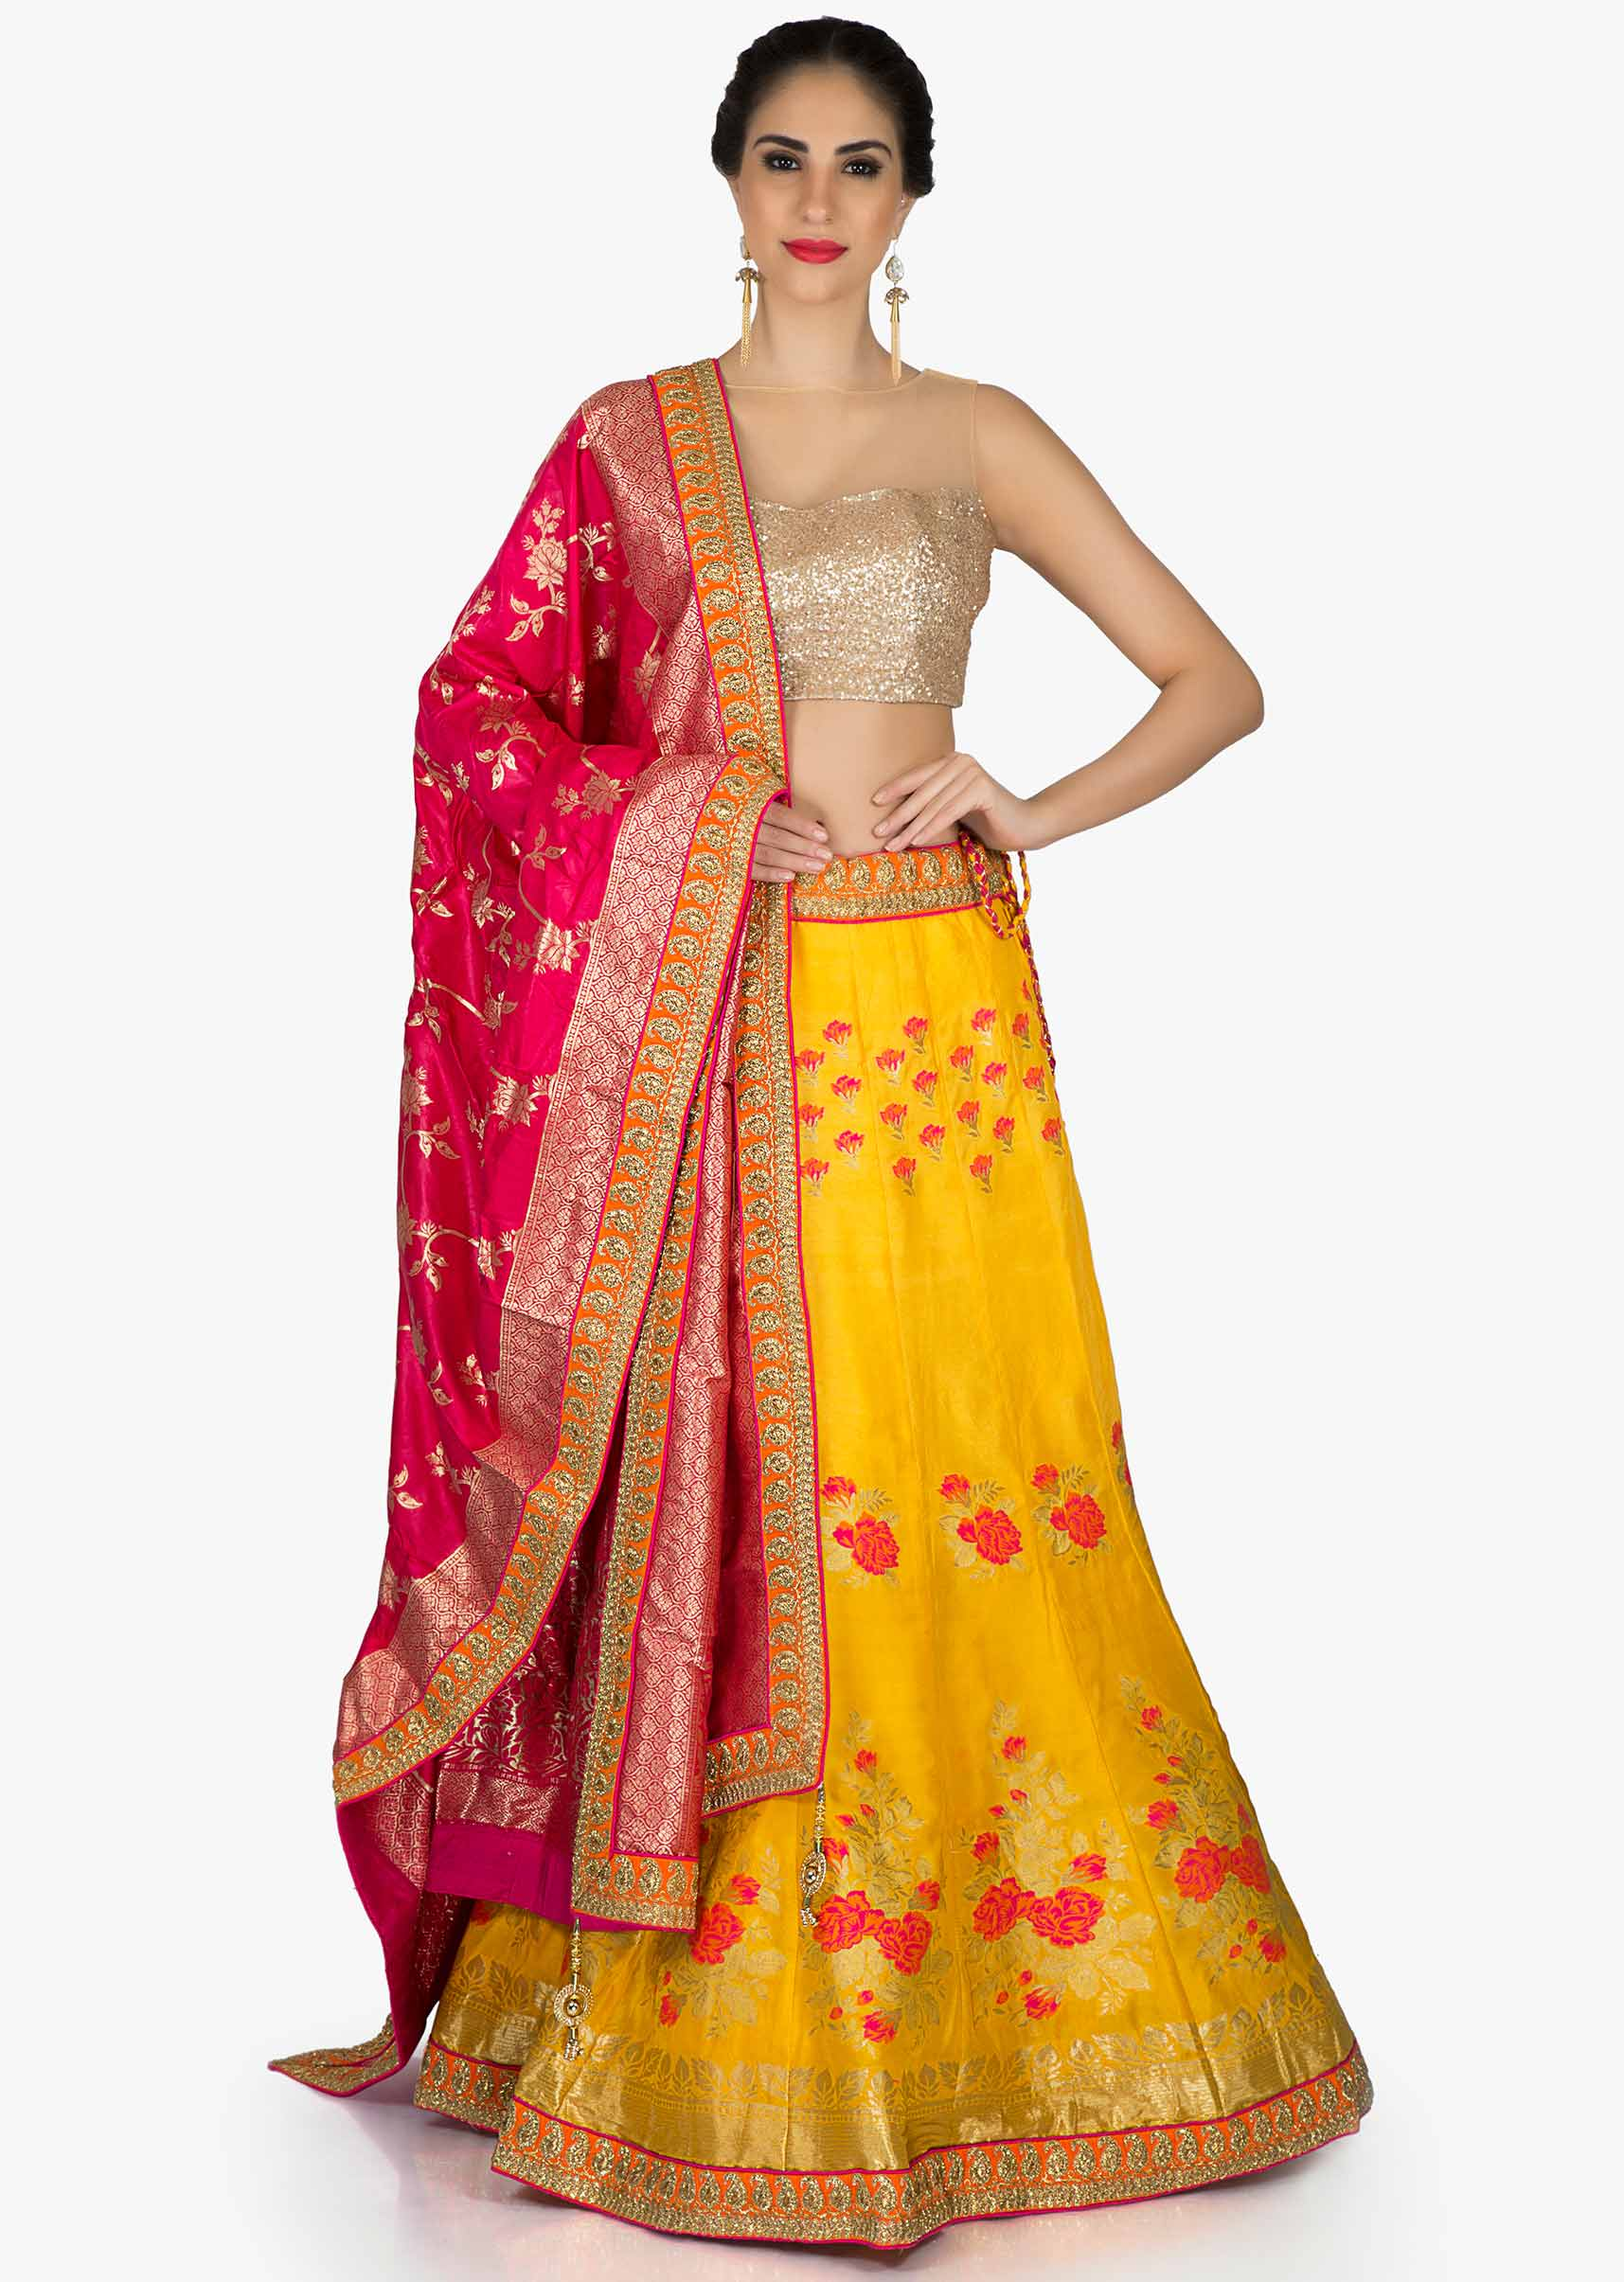 d475f899a0 Amber yellow lehenga in floral motif with contrast rani pink dupatta in  brocade only on KalkiMore Detail